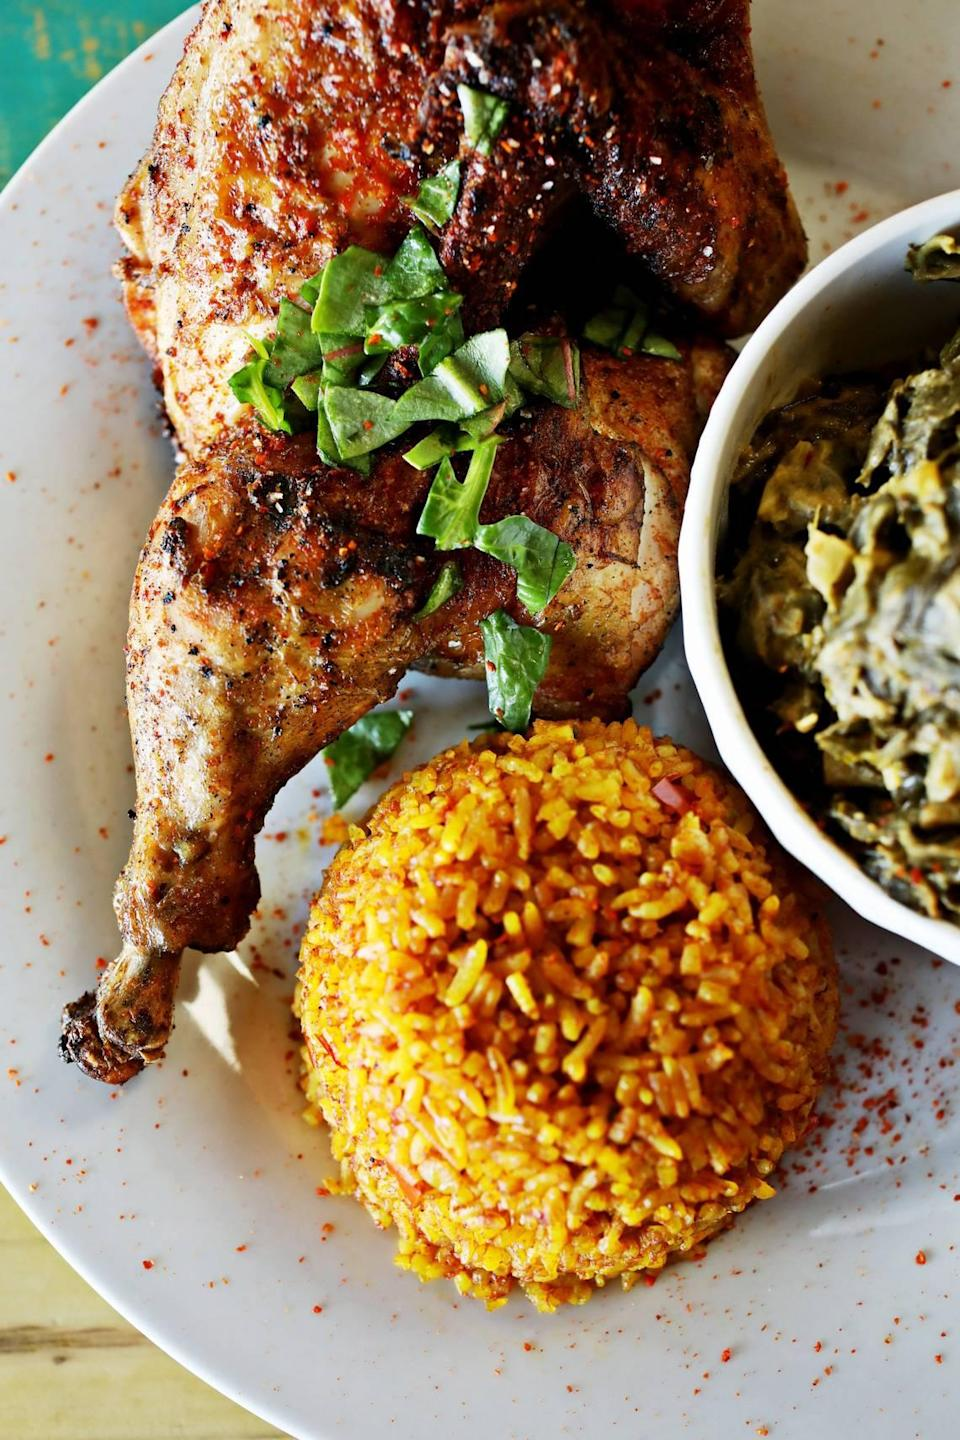 Zweli's in Durham serves a half chicken with a side of collard greens cooked with peanut butter and Jollof rice.